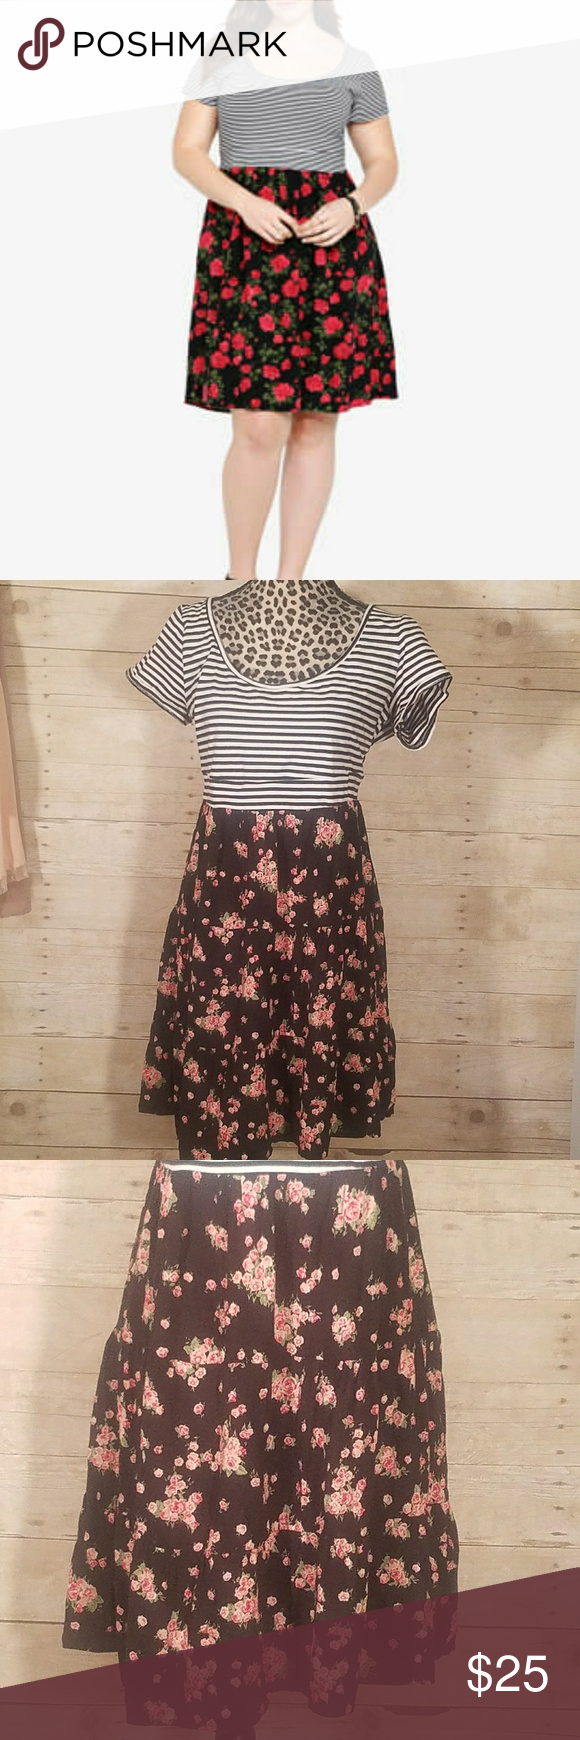 Torrid sz 1 Striped Floral Roses Dress Top is black and white striped knit. Bottom is swingy with roses and pockets. Excellent condition! Torrid size 1 is equivalent to a 14/16 or a 1X. torrid Dresses Mini